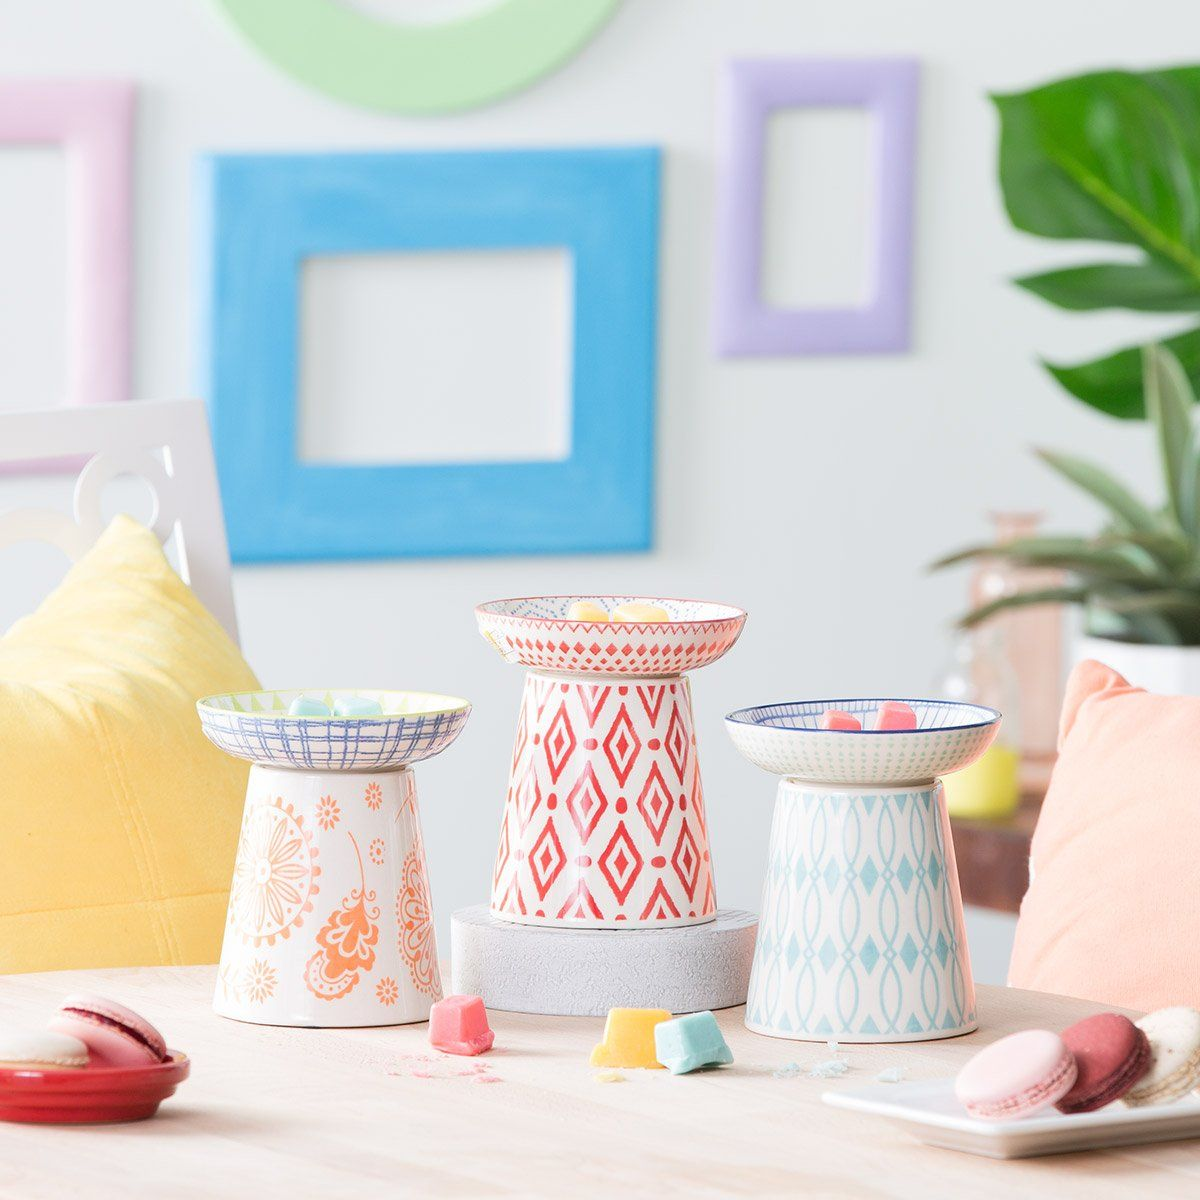 Mix and Match to give your space the perfect POP of COLOR